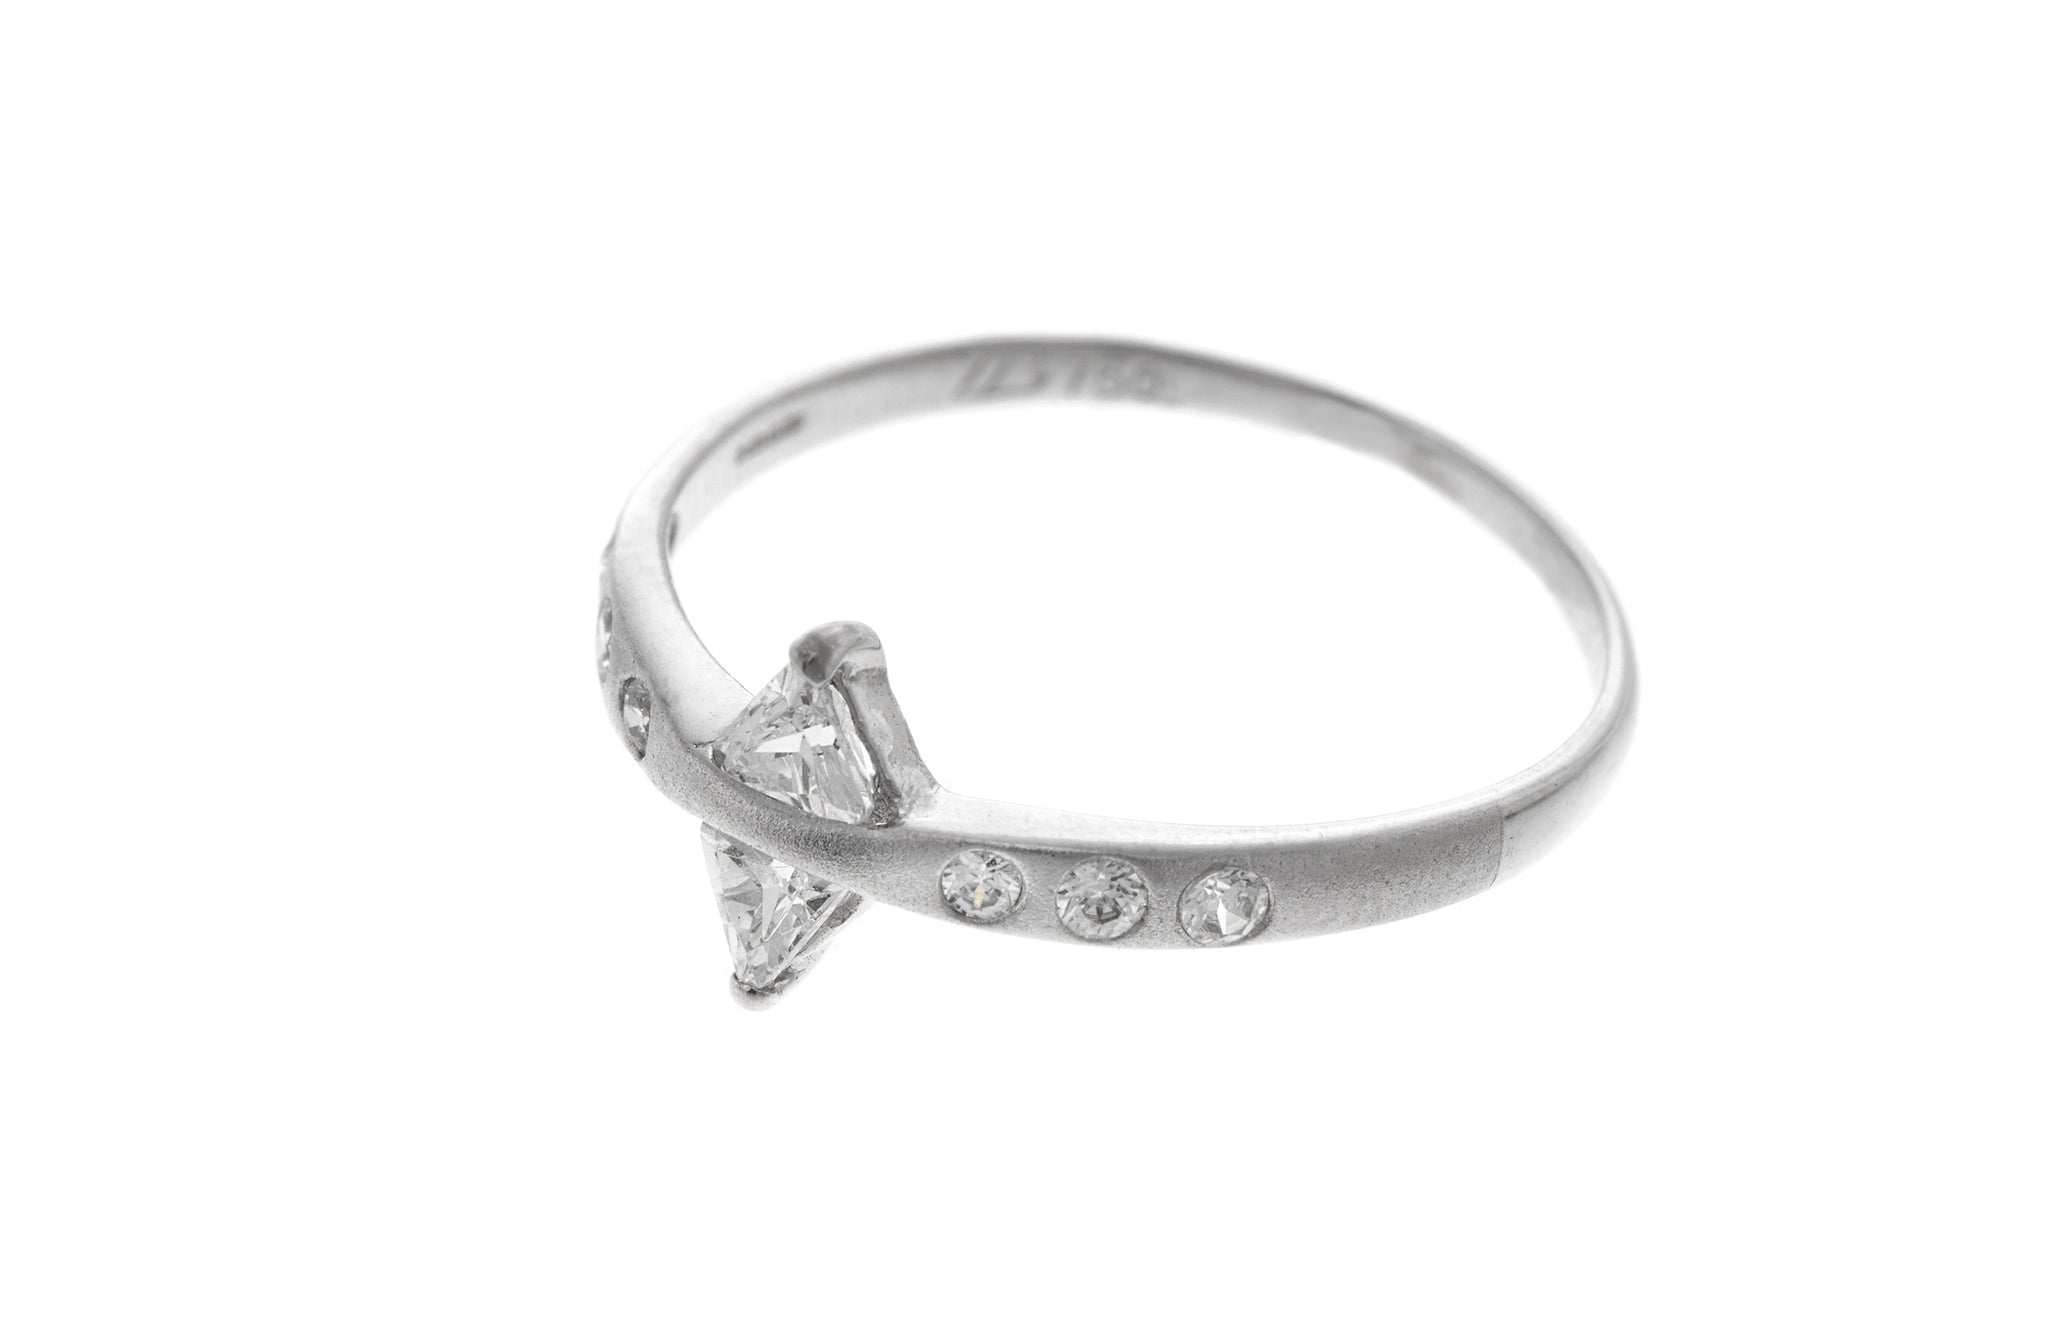 18ct White Gold Dress Ring set with Cubic Zirconias (LR-2356)